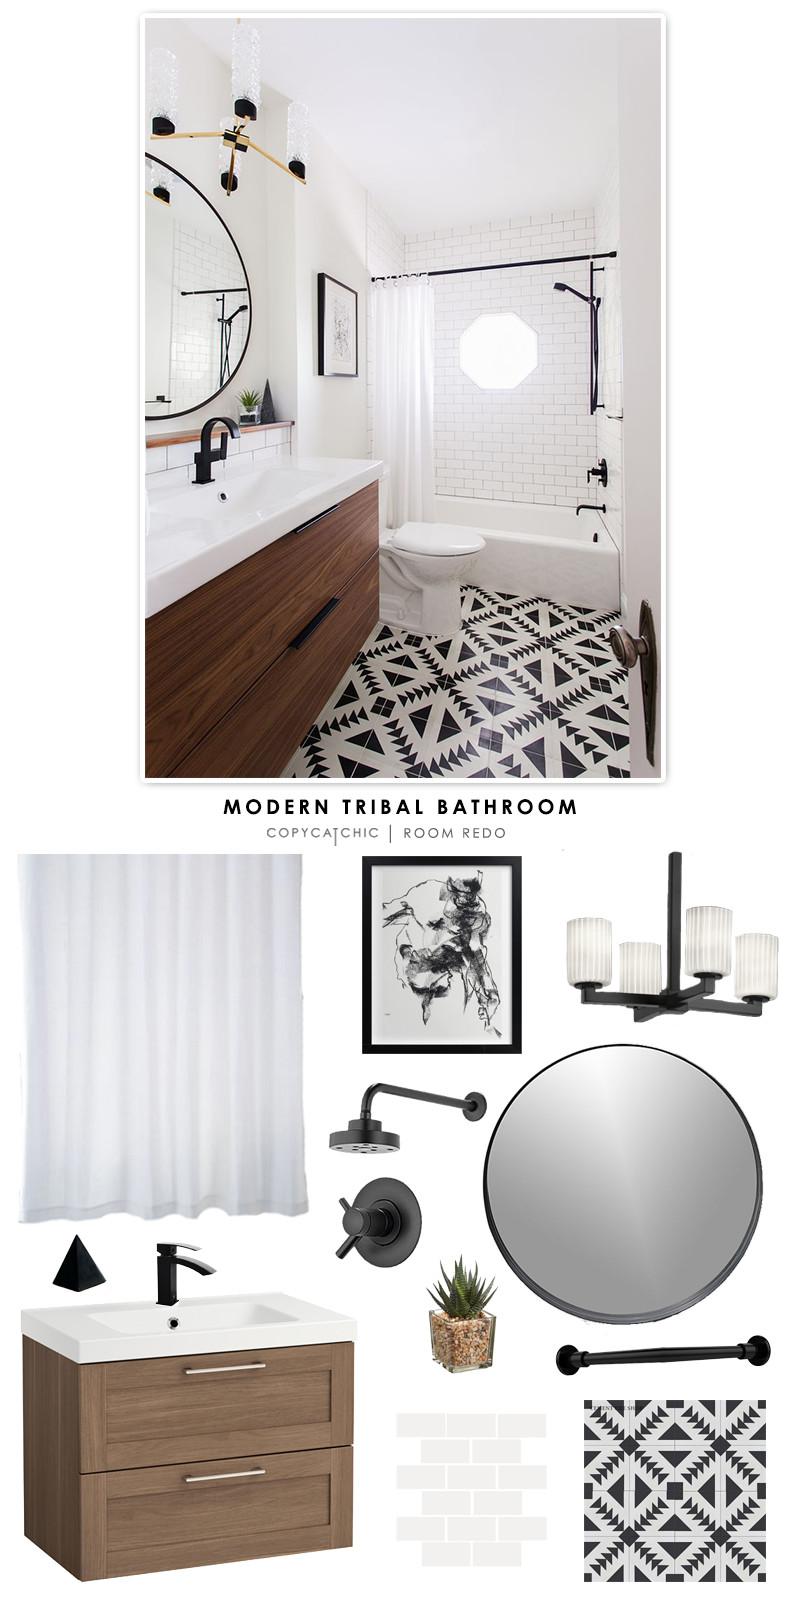 A modern black and white tribal bathroom design by Erin Williamson of Design Crisis recreated for less by Copy Cat Chic